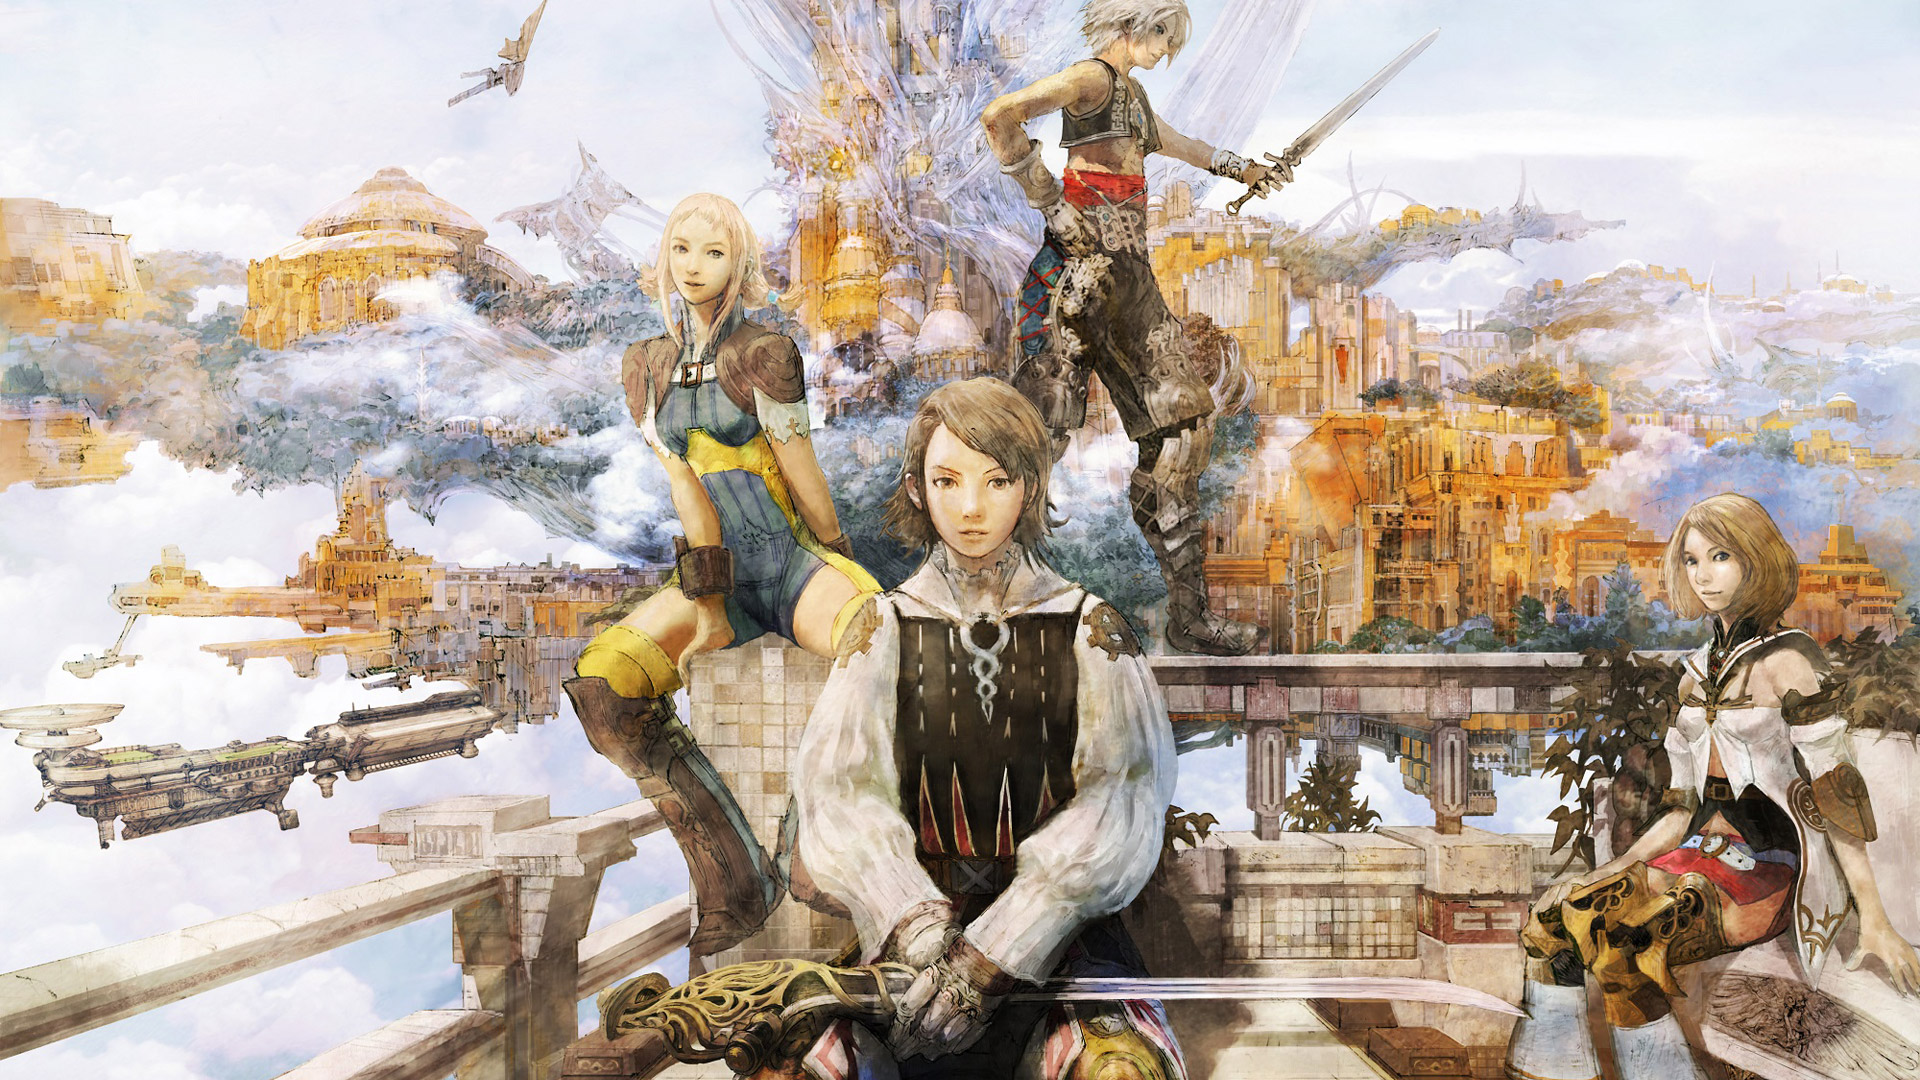 Final Fantasy Zodiac Age Wallpaper Posted By Ethan Thompson